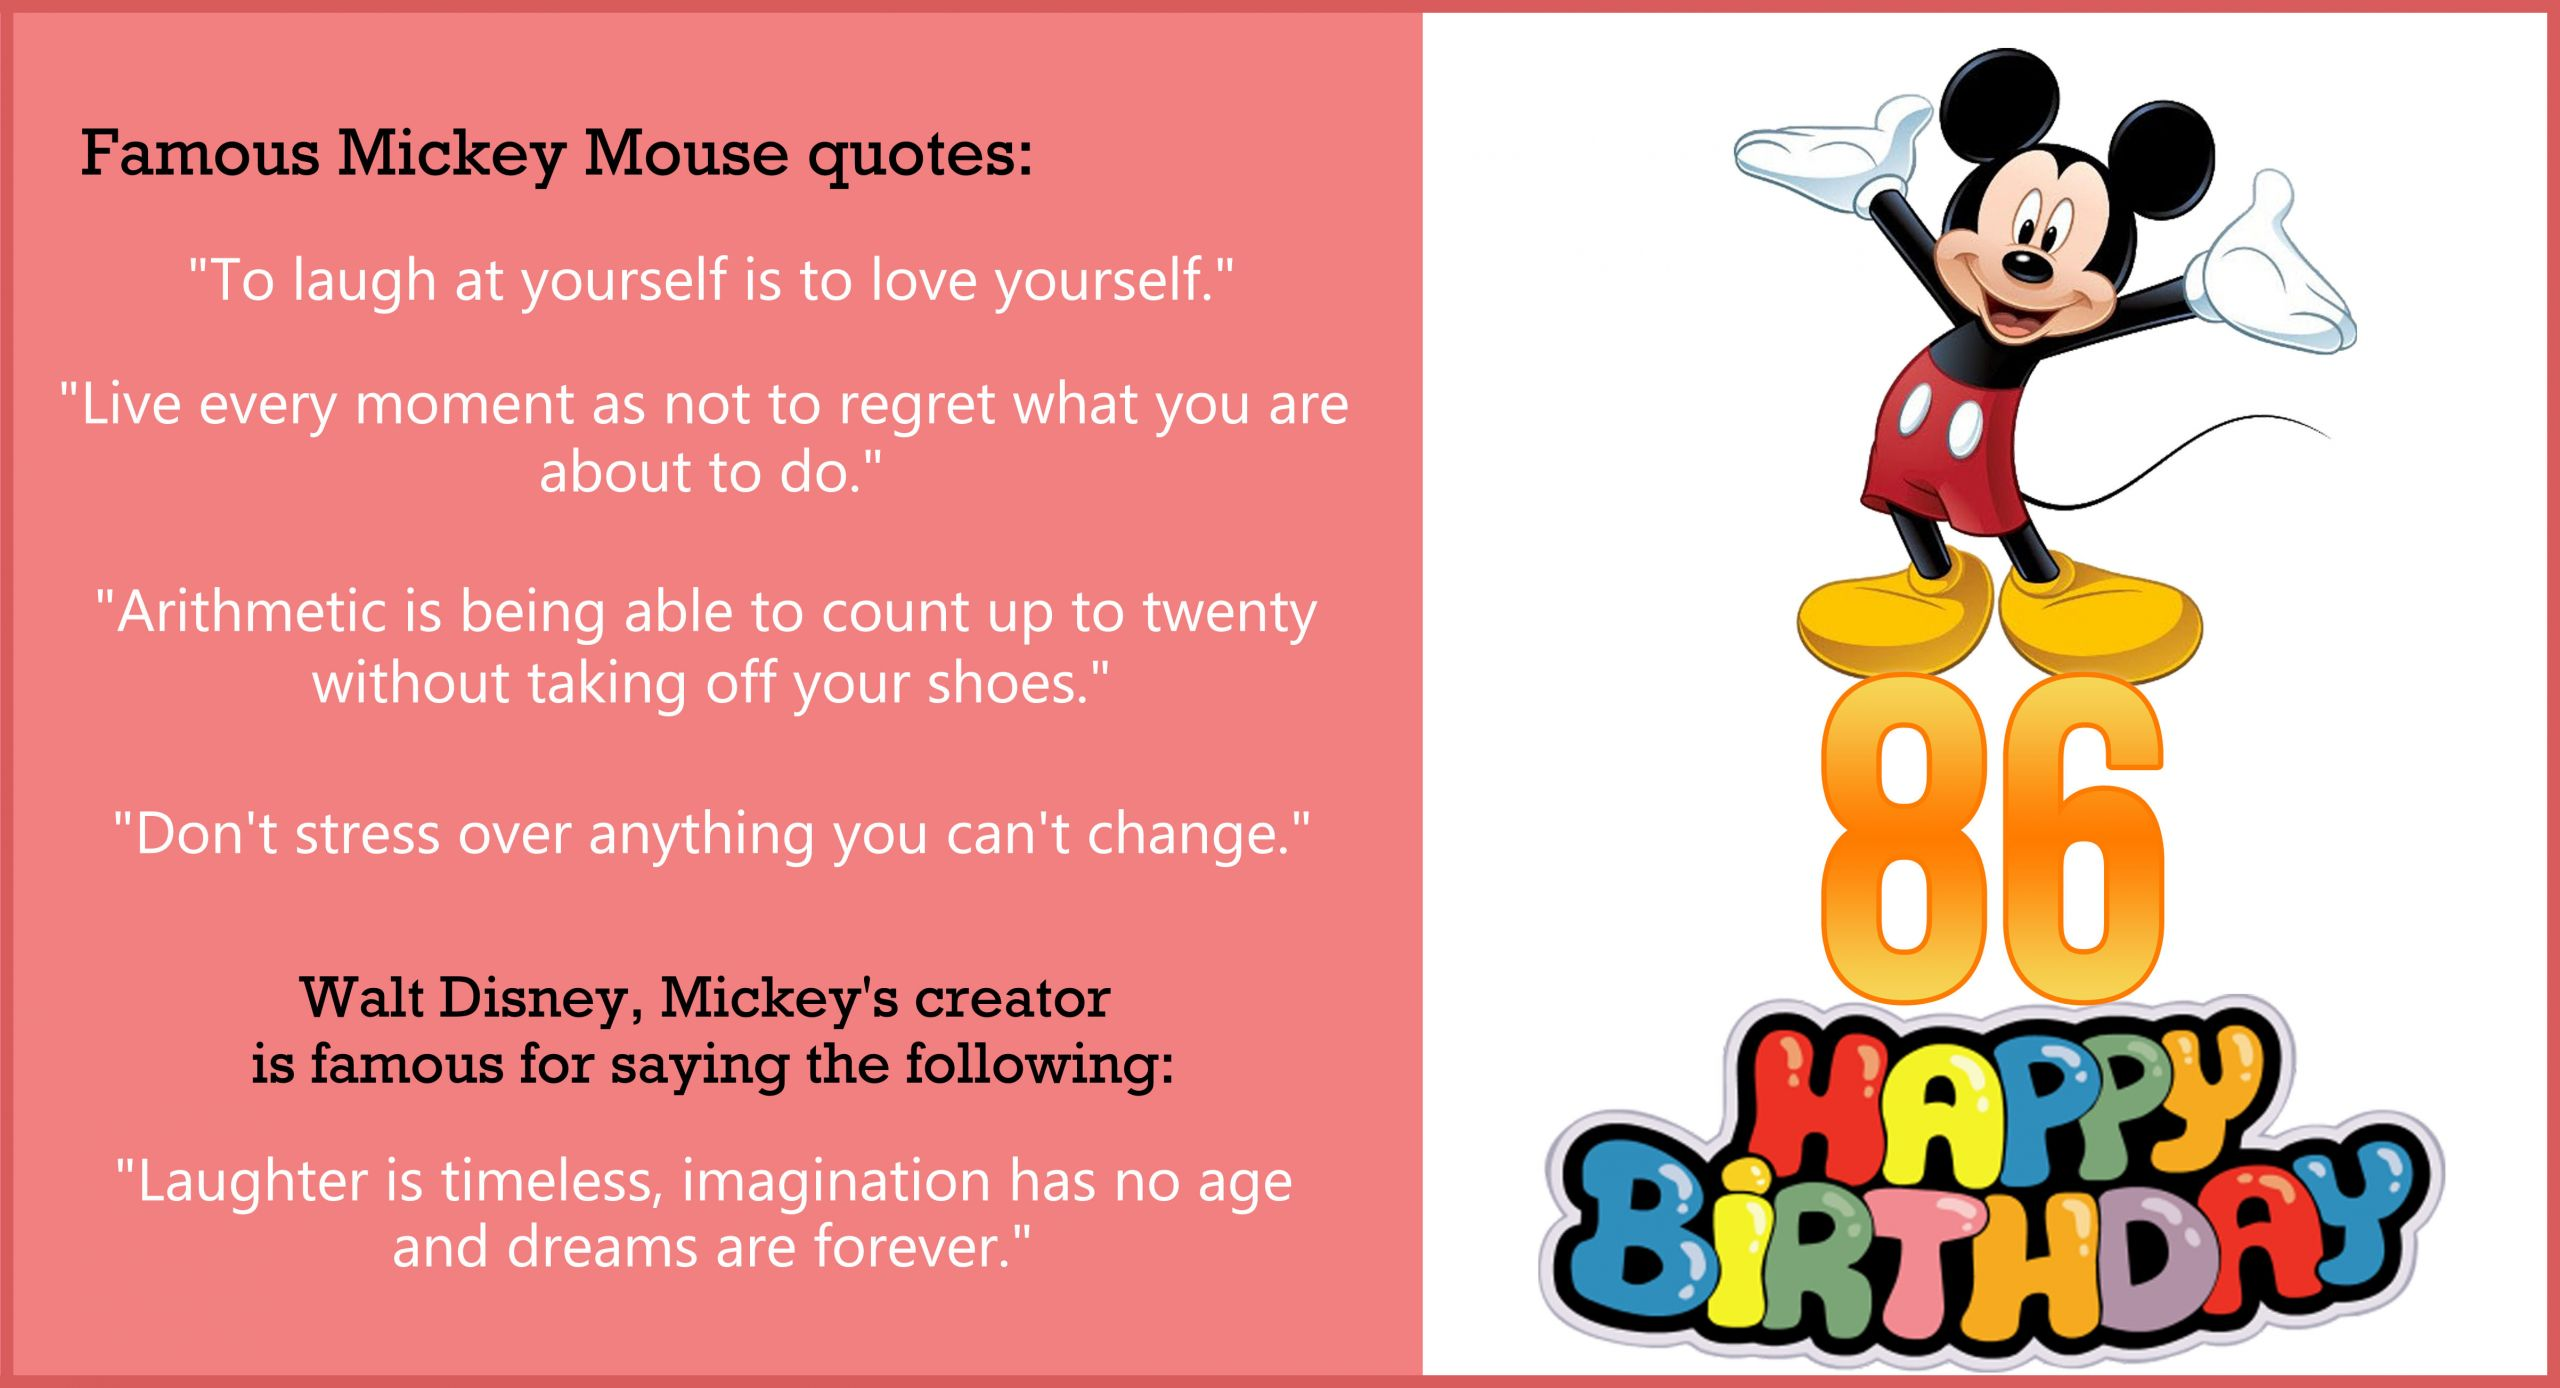 Mickey Mouse Birthday Quotes  [Image] Celebrate Mickey Mouse 86th birthday with his